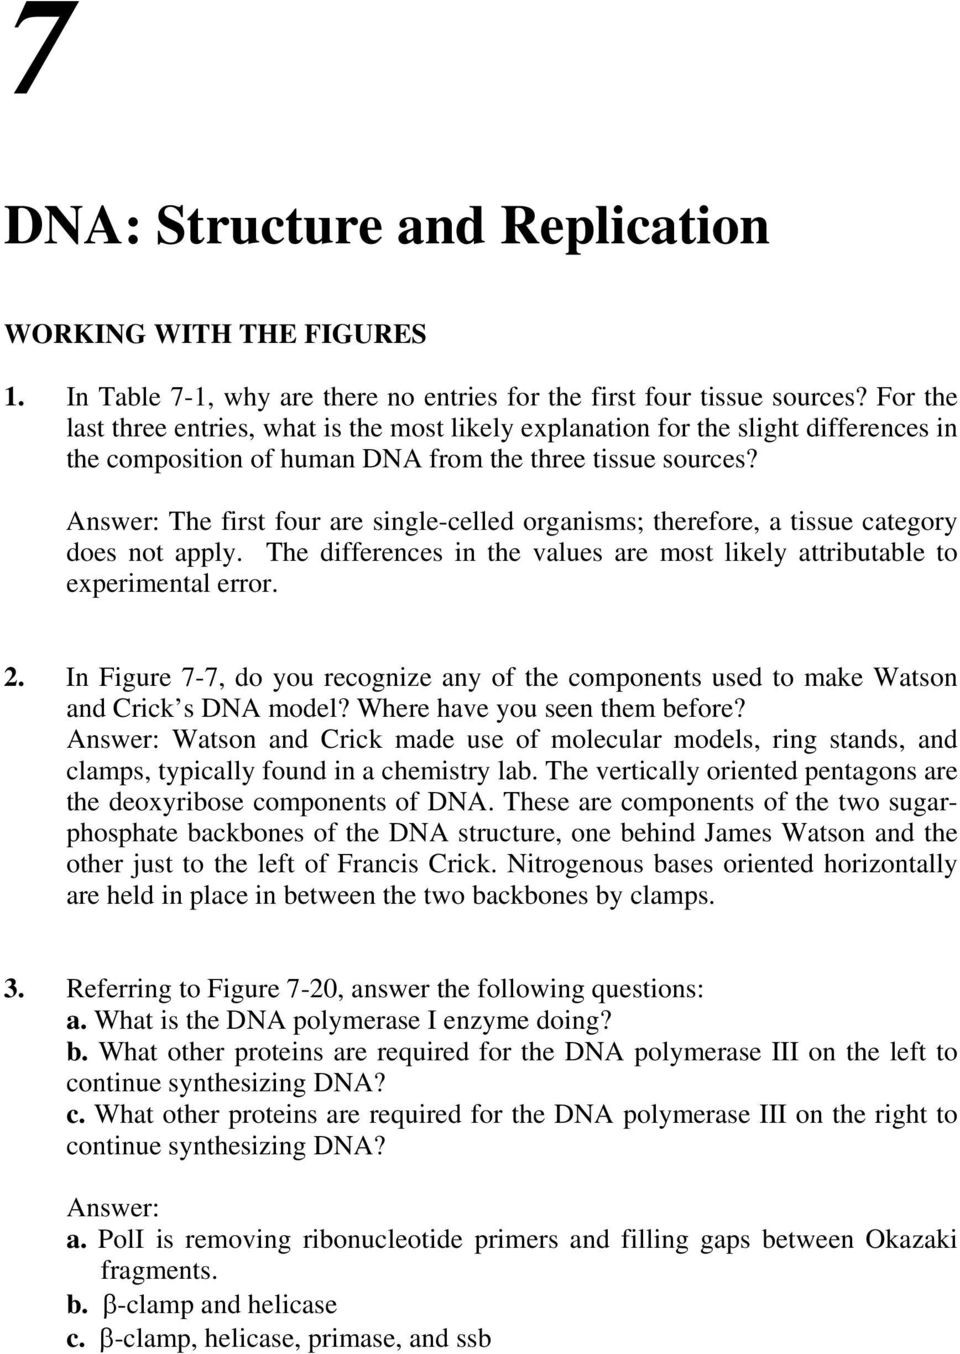 Dna Structure and Replication Worksheet Dna Structure and Replication Pdf Free Download